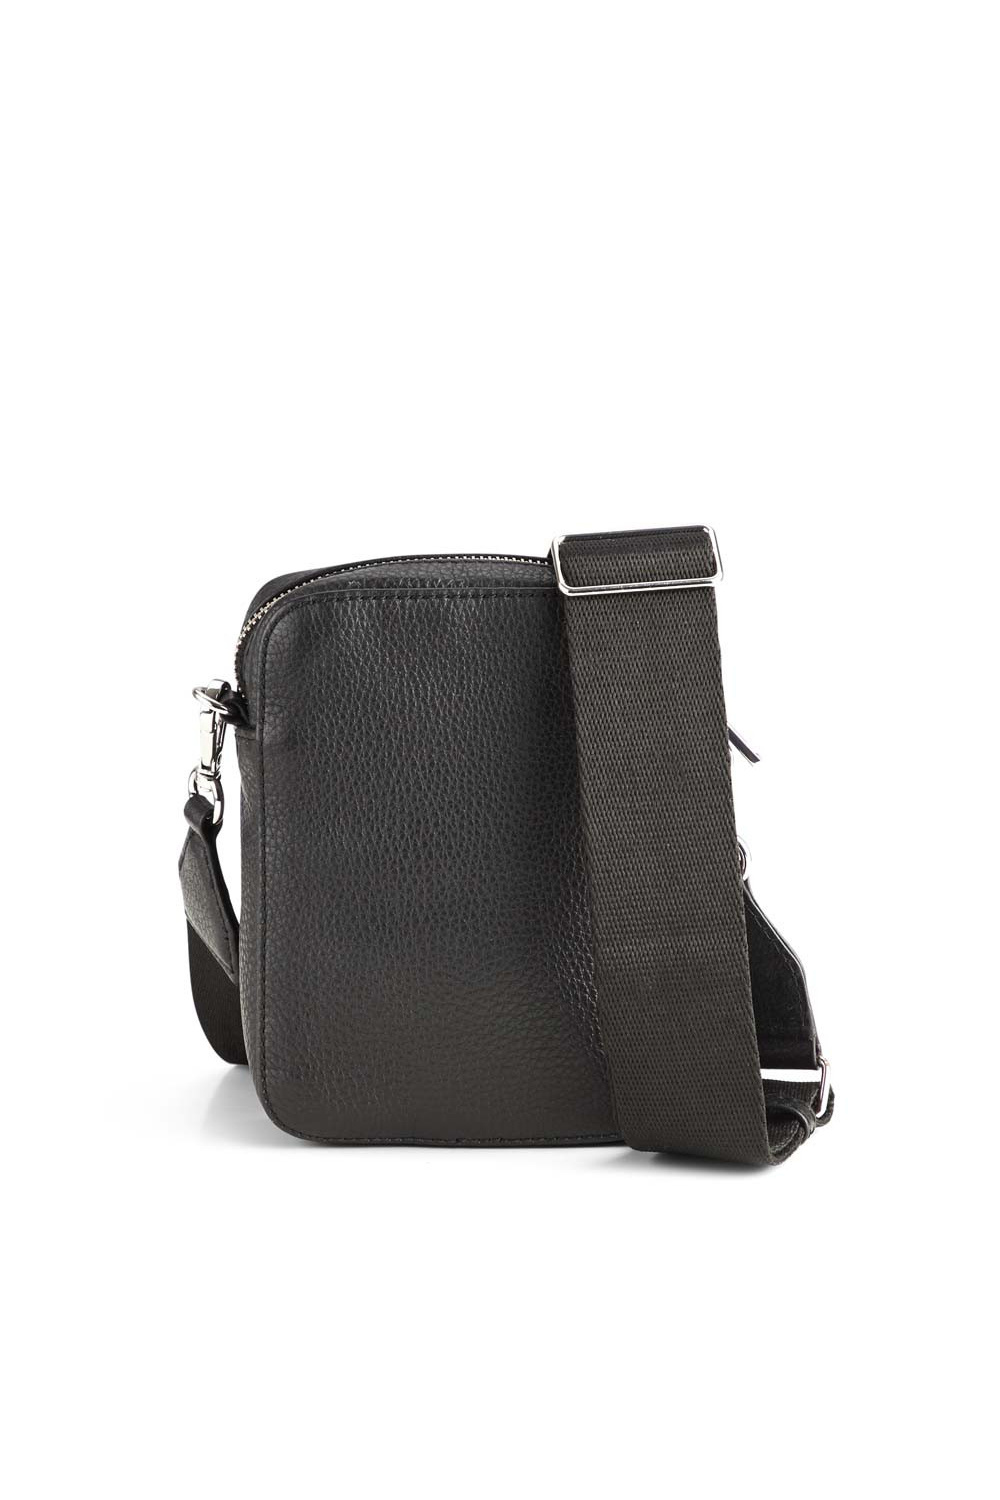 Mariana Crossbody Bag Grain - Black w/ Black-4